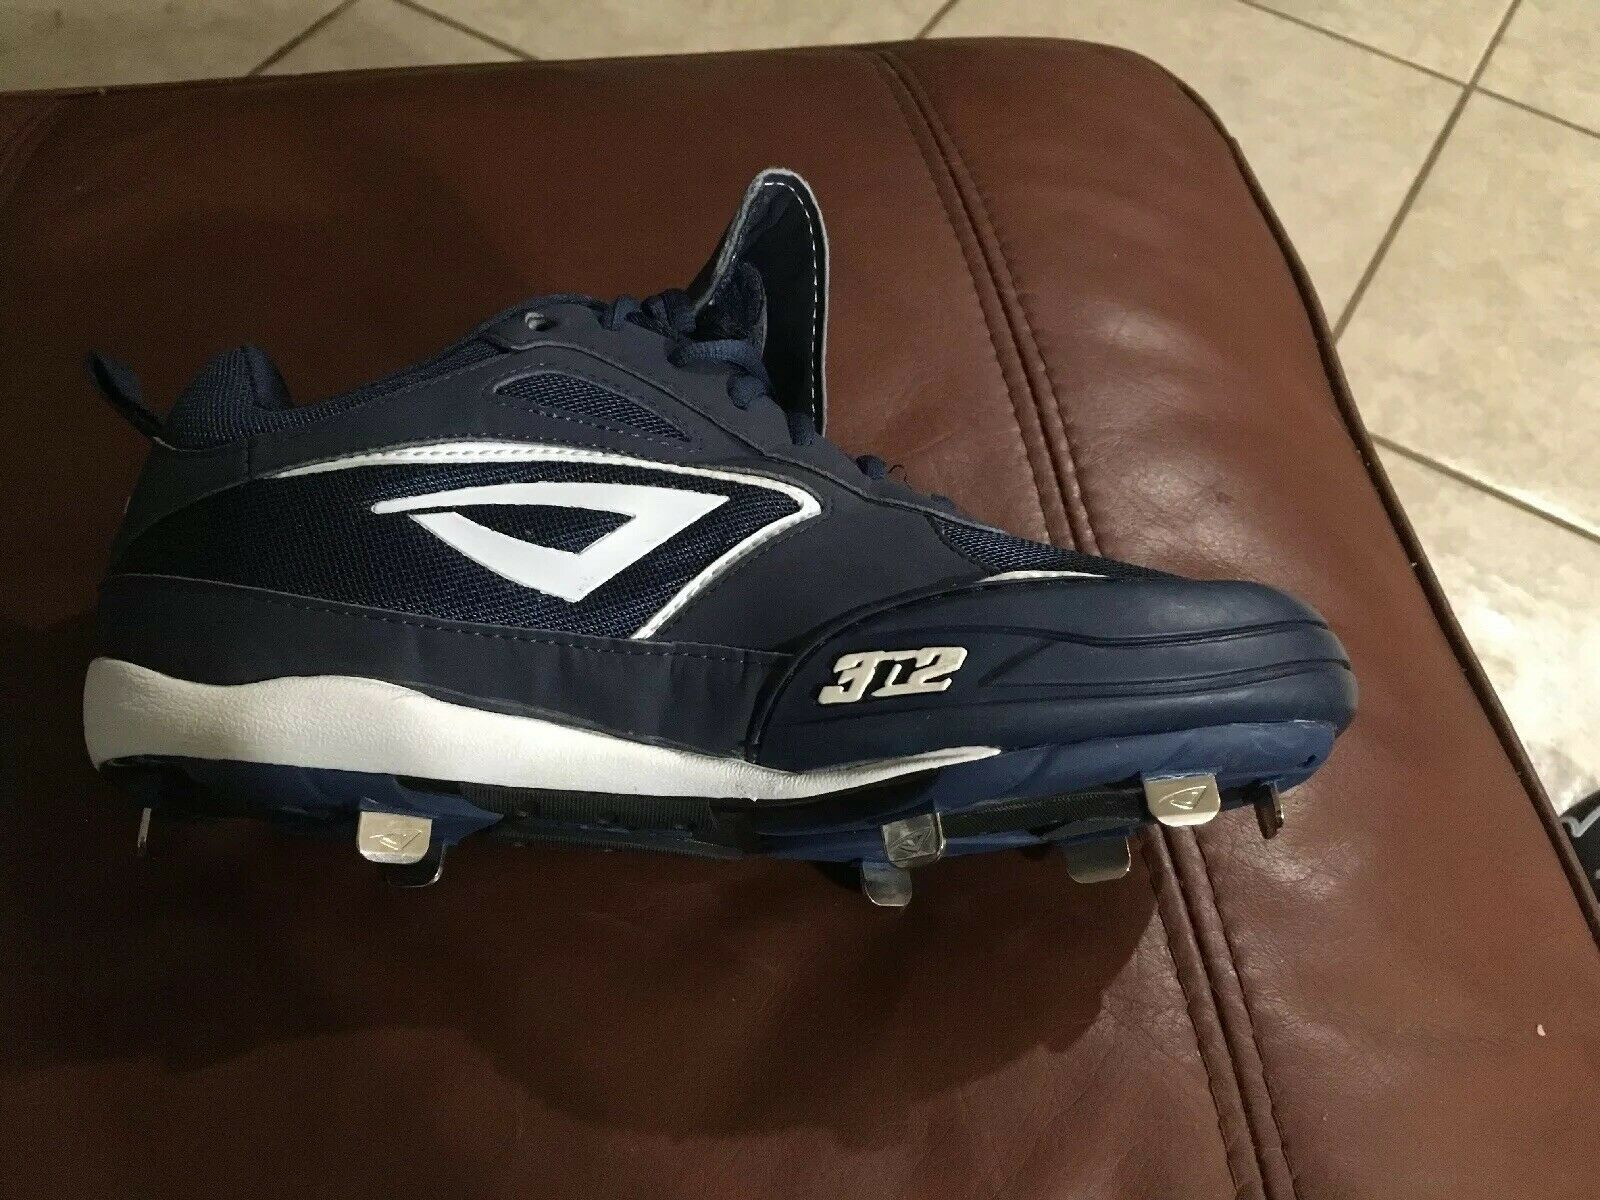 New mujer's 3N2 Navy blancoo Rally Metal PT Fastpitch Softball Softball Softball Cleats Talla 11 8ffc7b